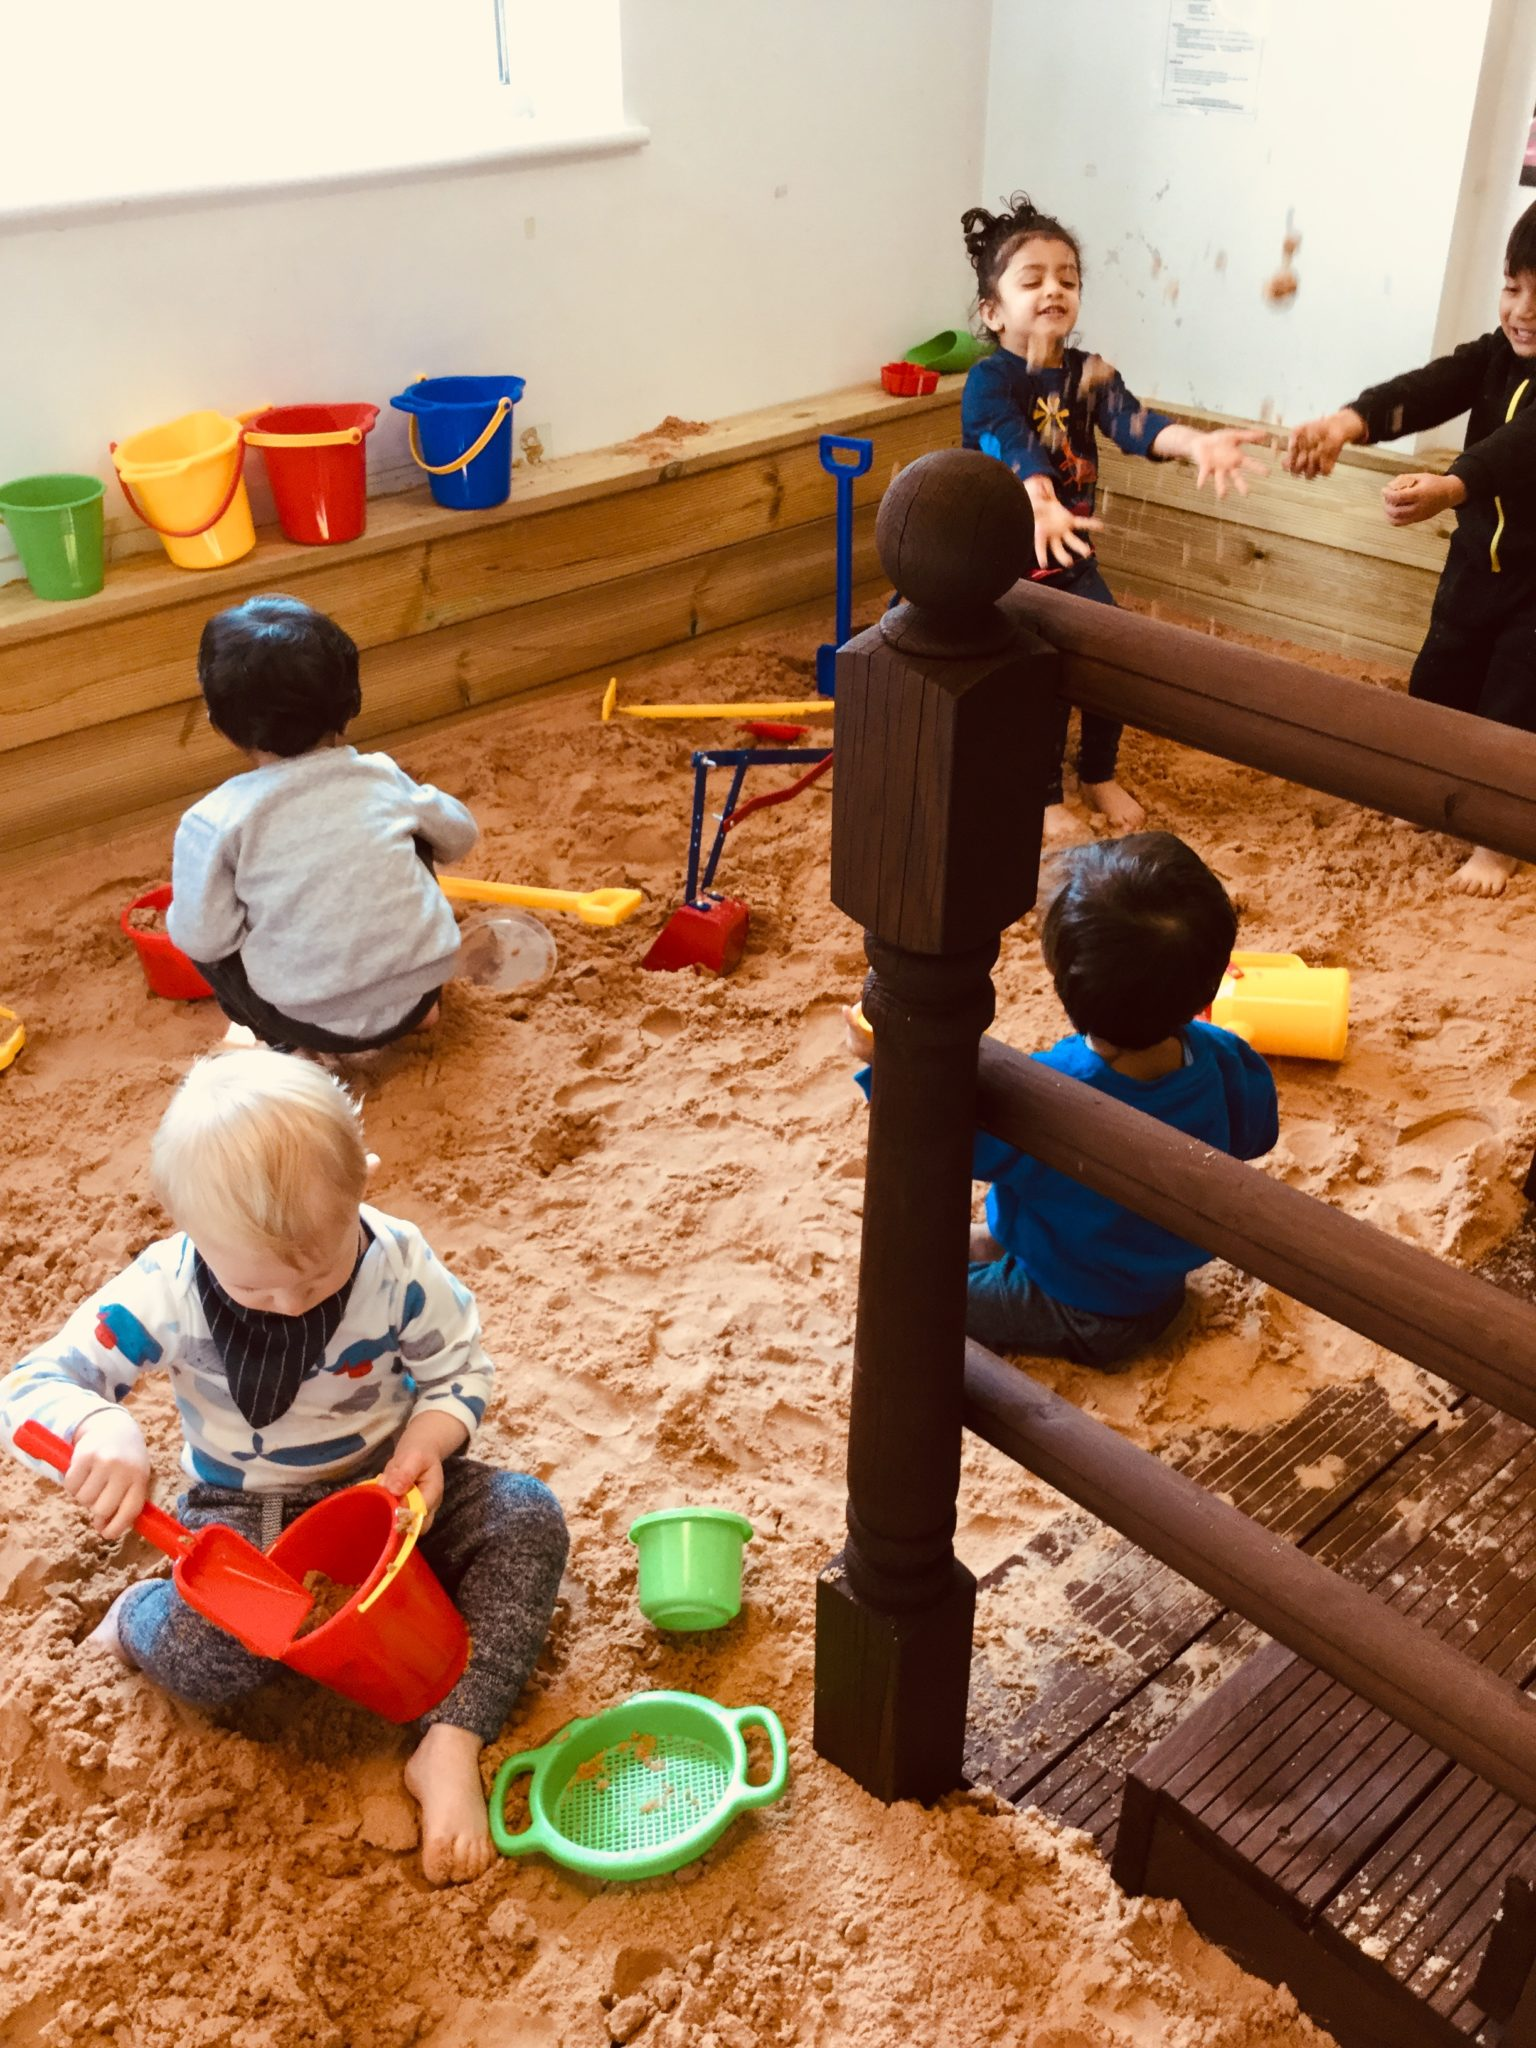 Children playing in giant sandpit